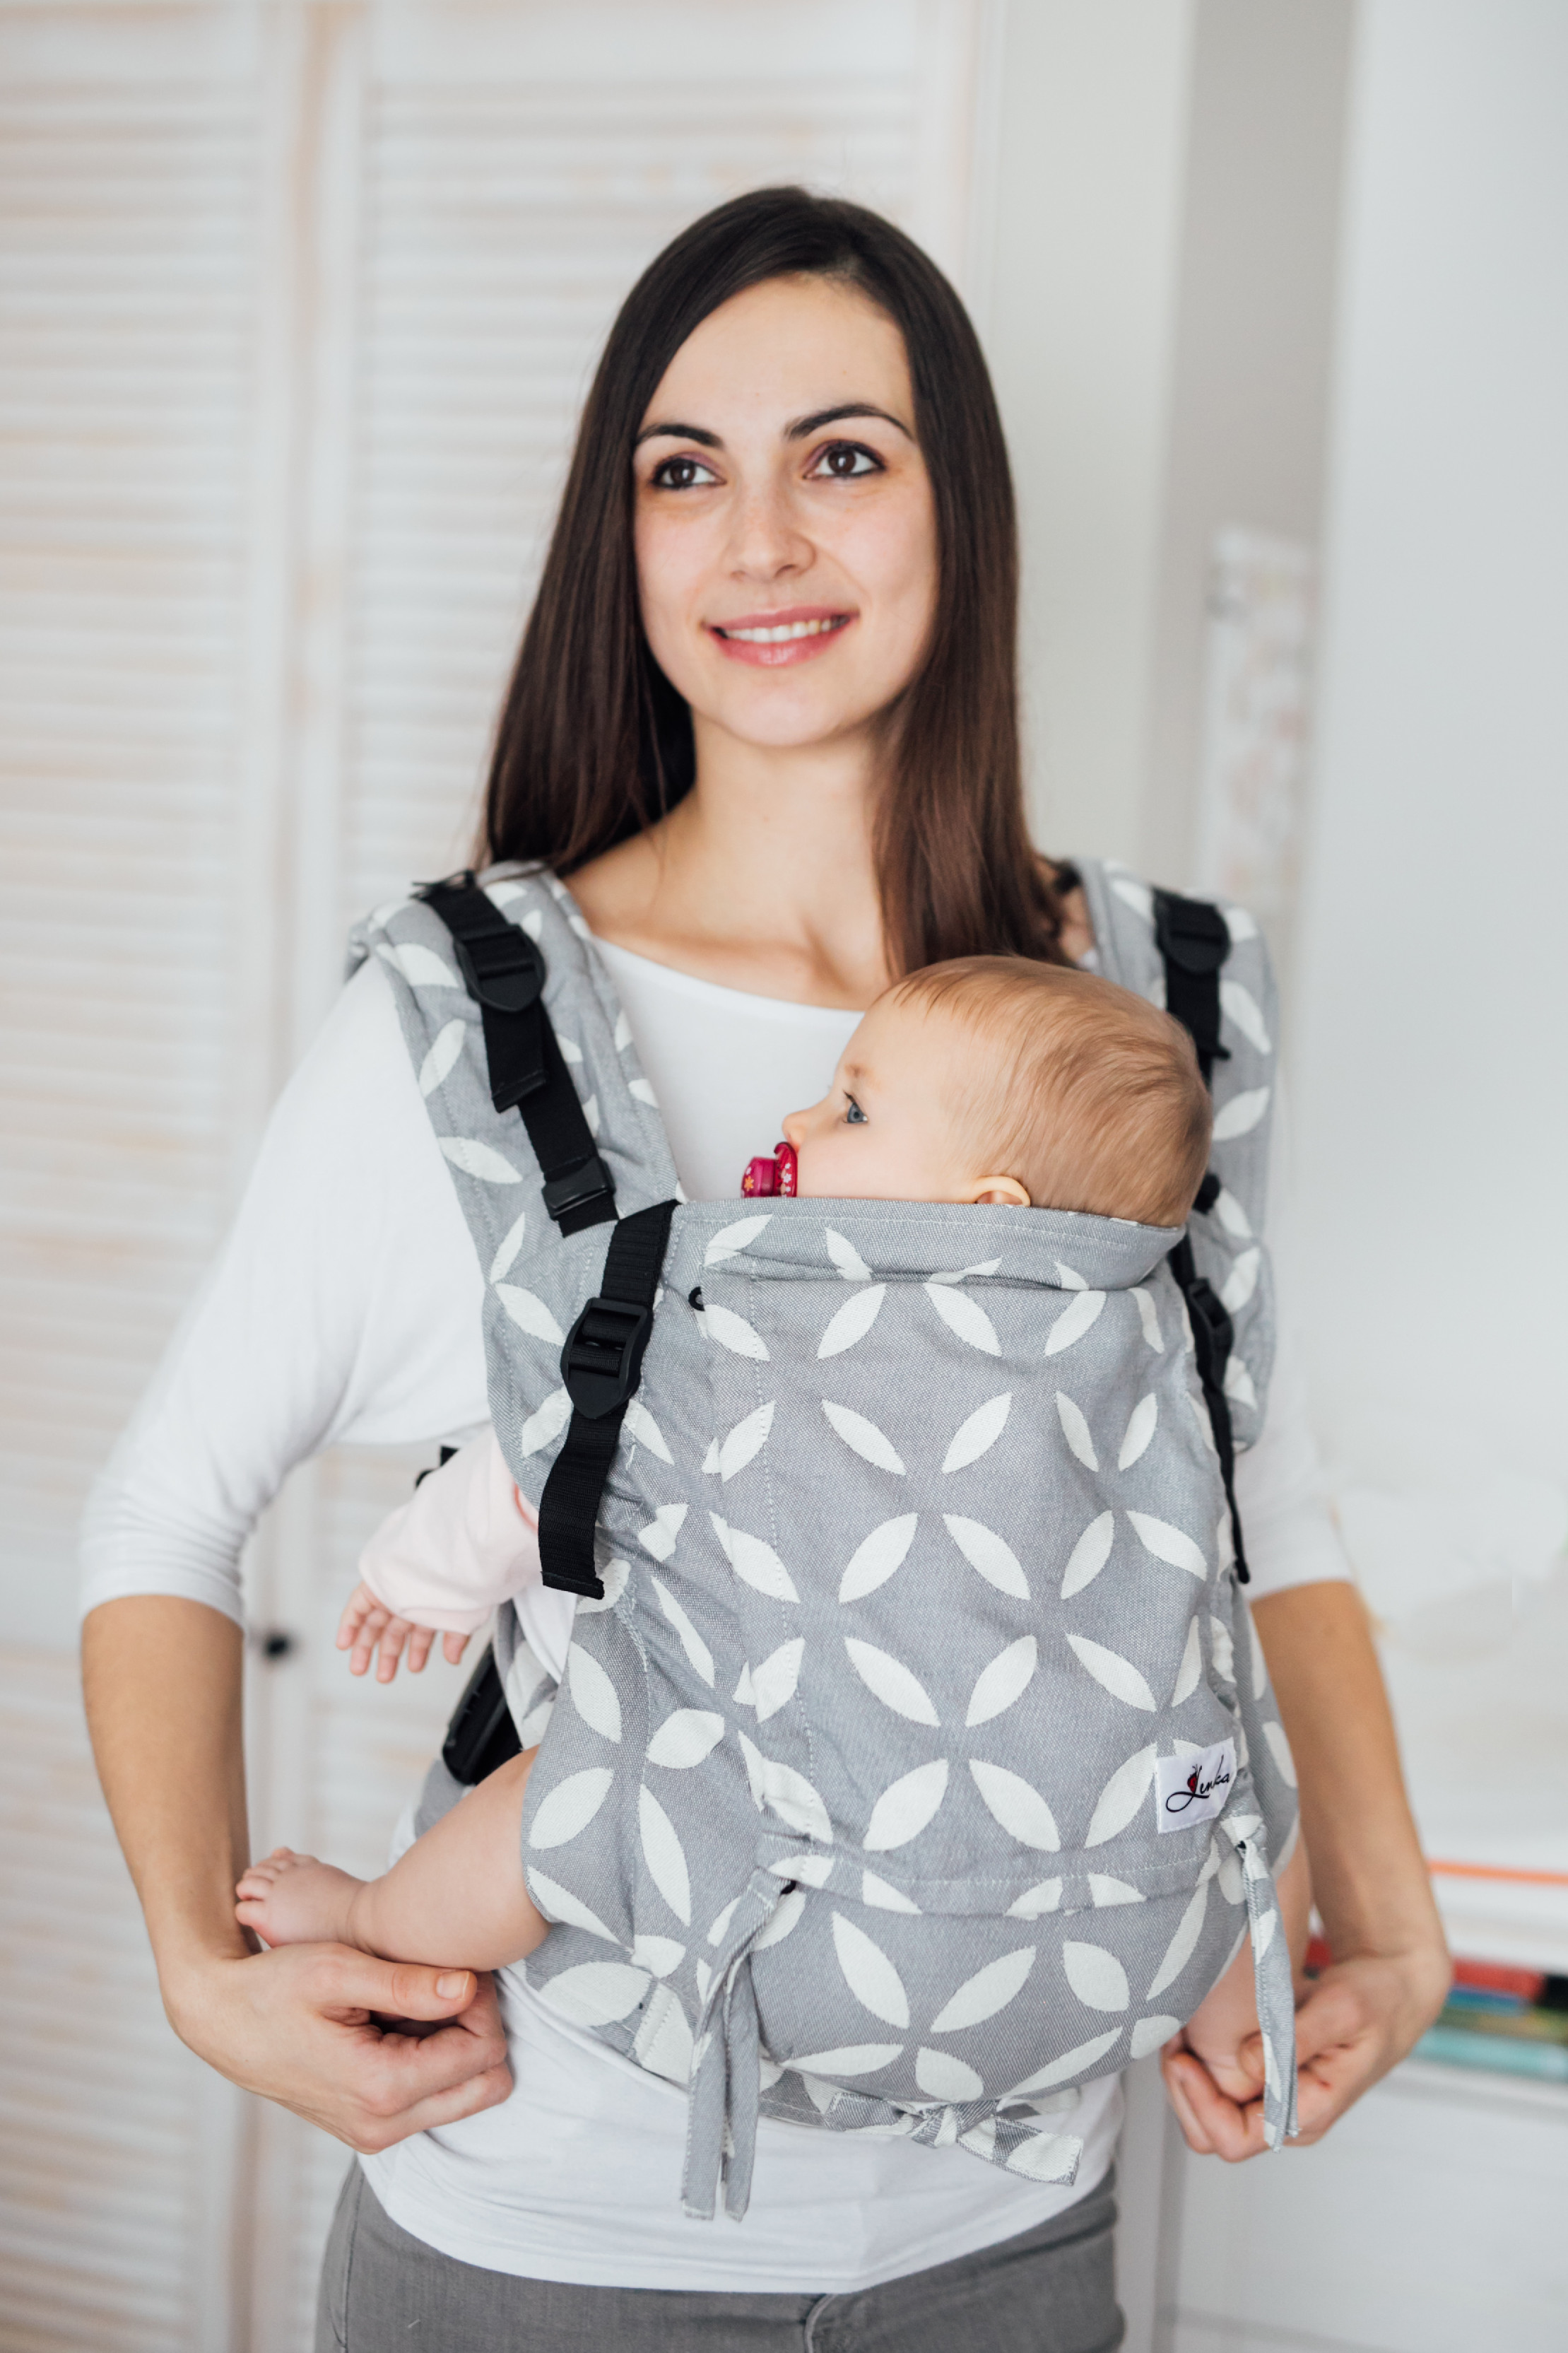 Baby carrier - Be Lenka 4ever Classic - Grey wide with the possibility of crossing